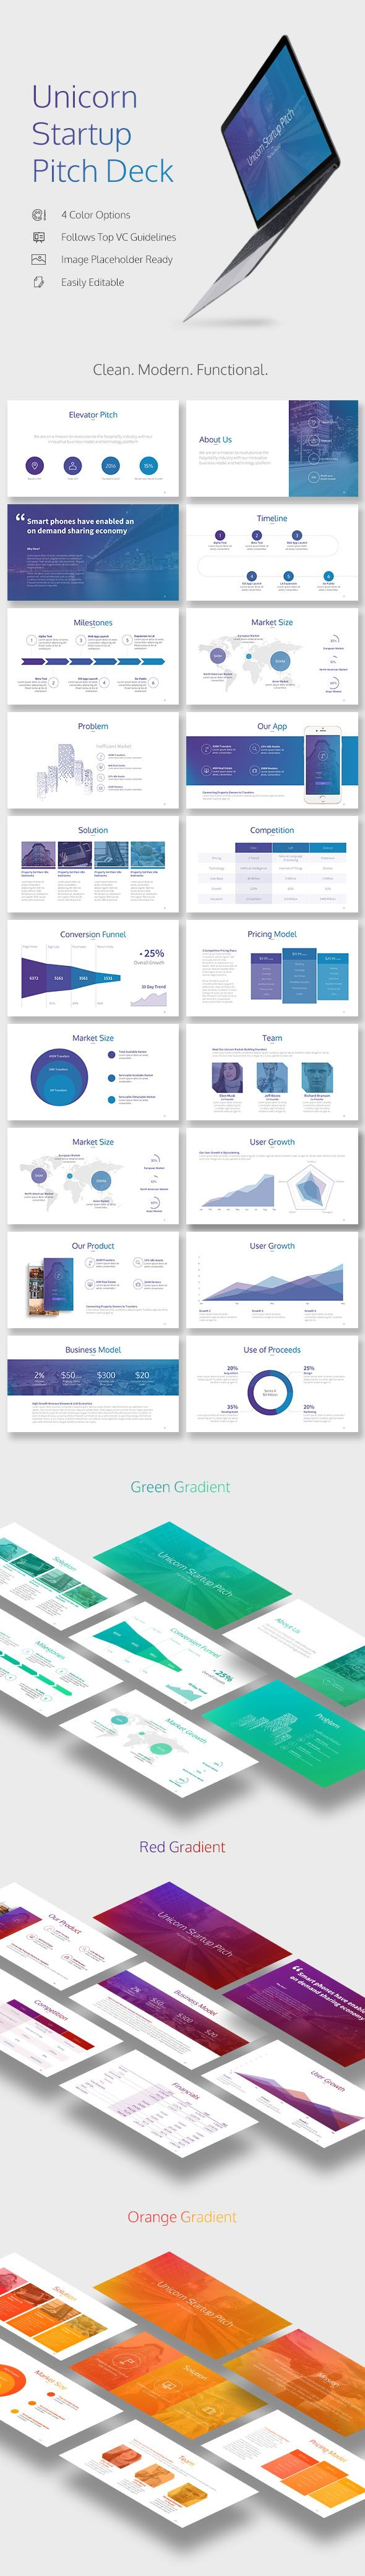 Unicorn Startup Pitch Deck - PowerPoint Template. Download here…